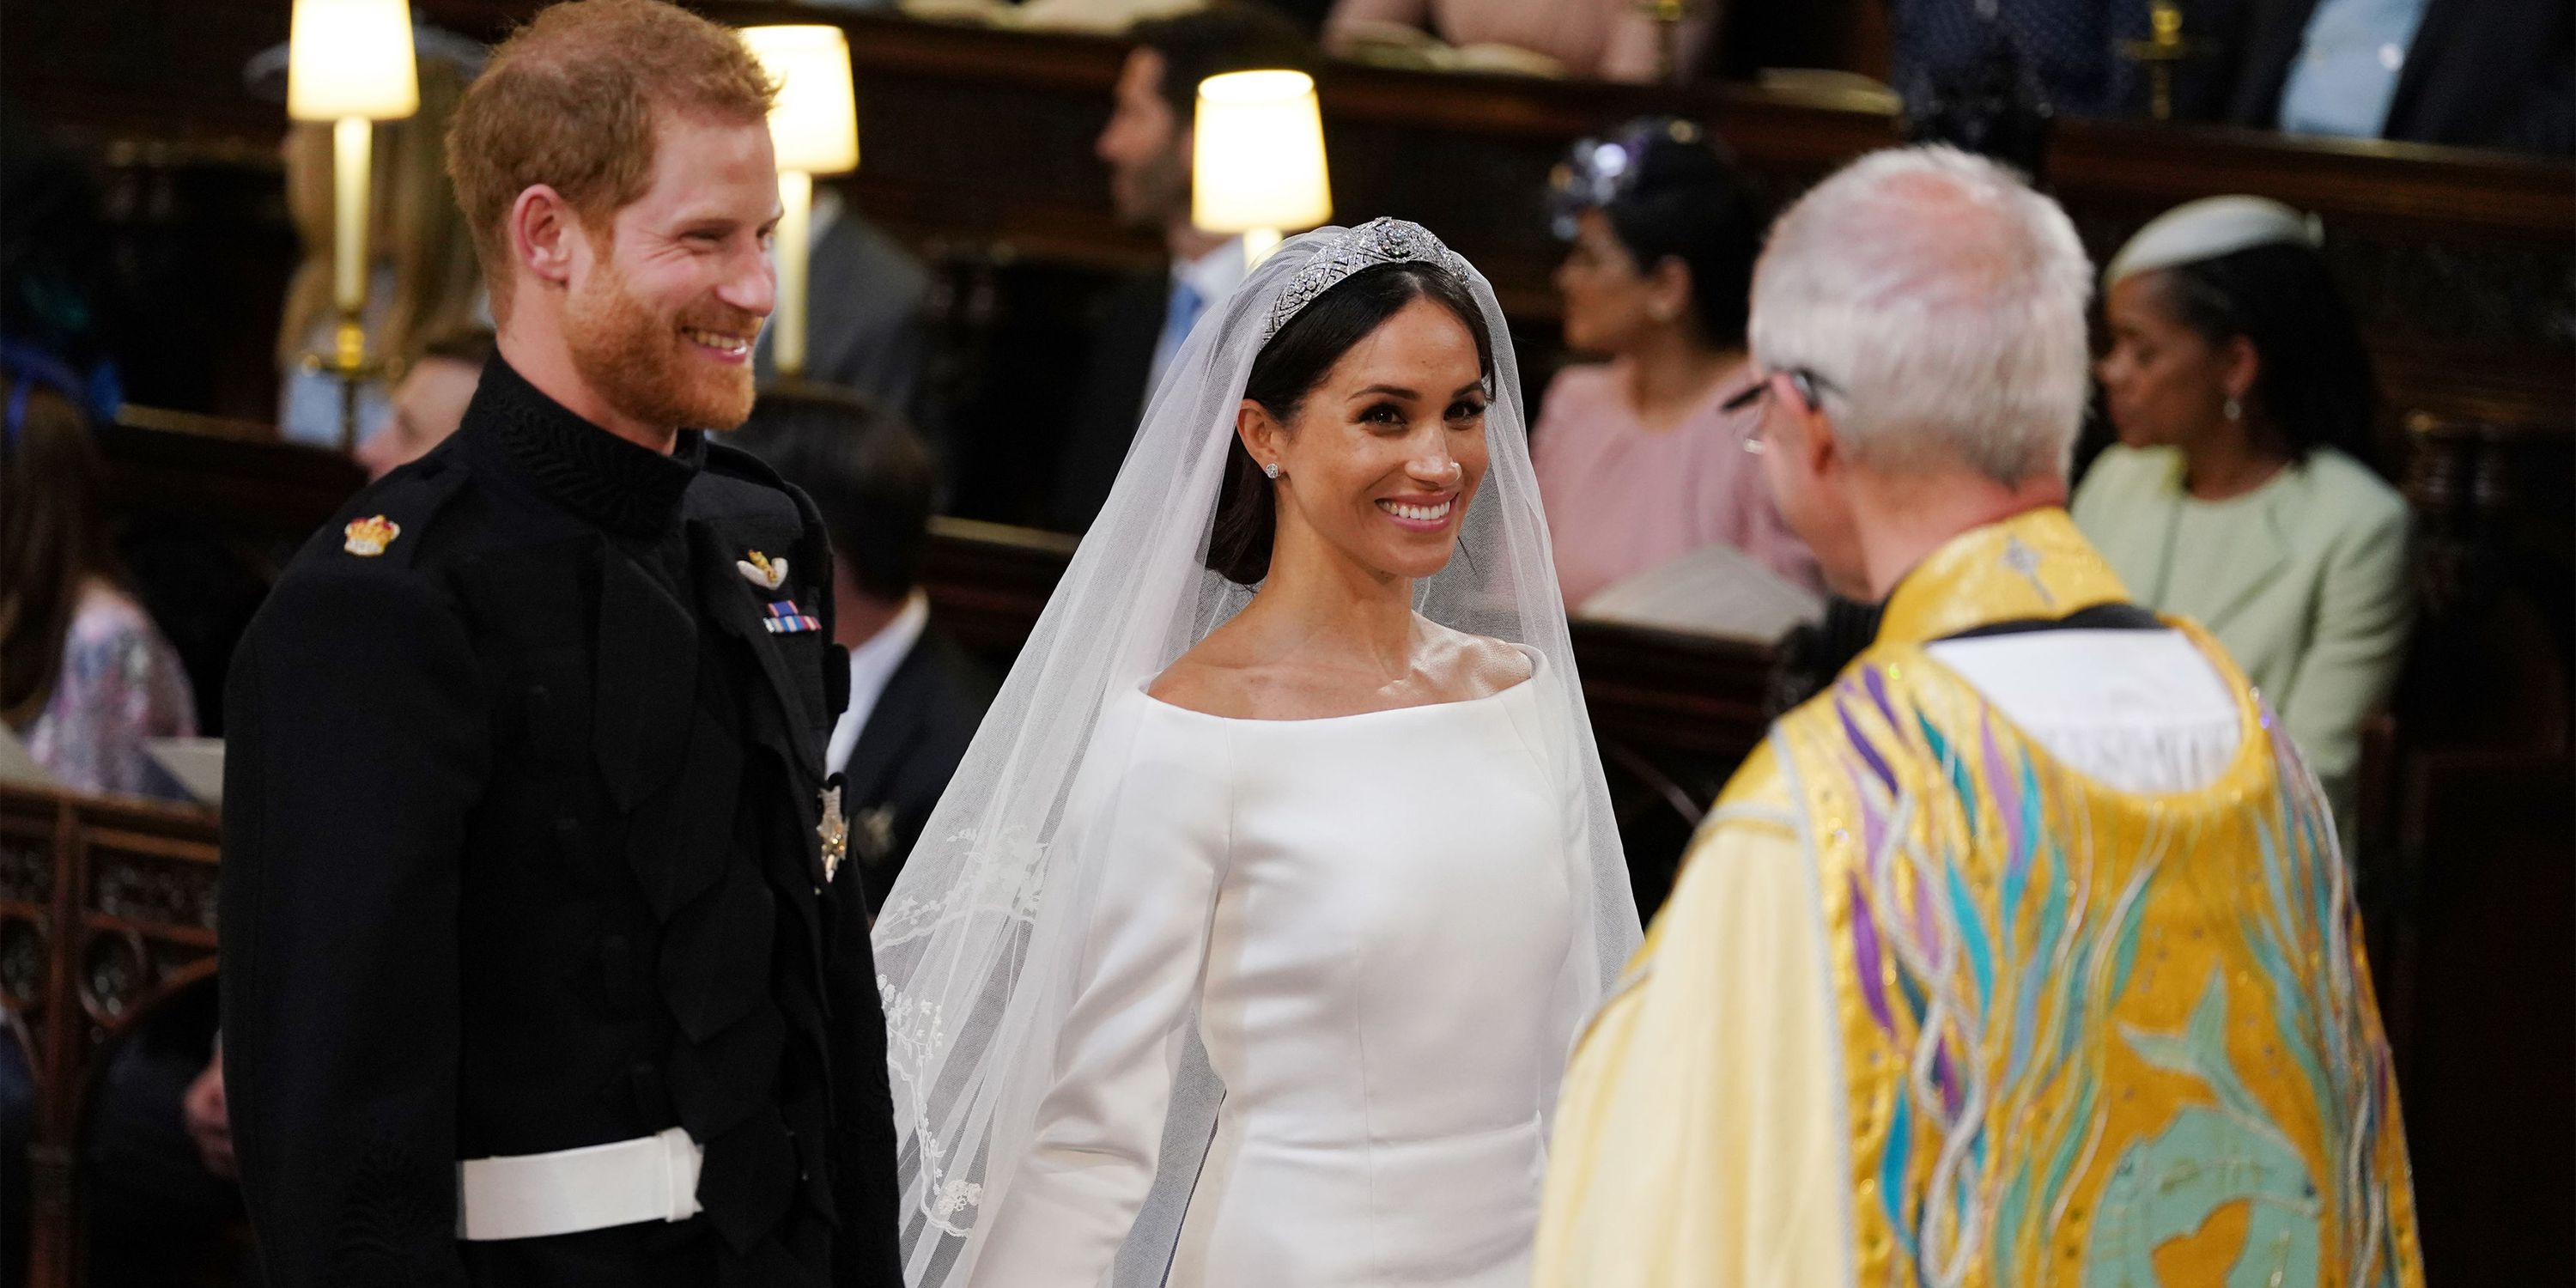 The Best Meghan Markle's First Wedding Dress